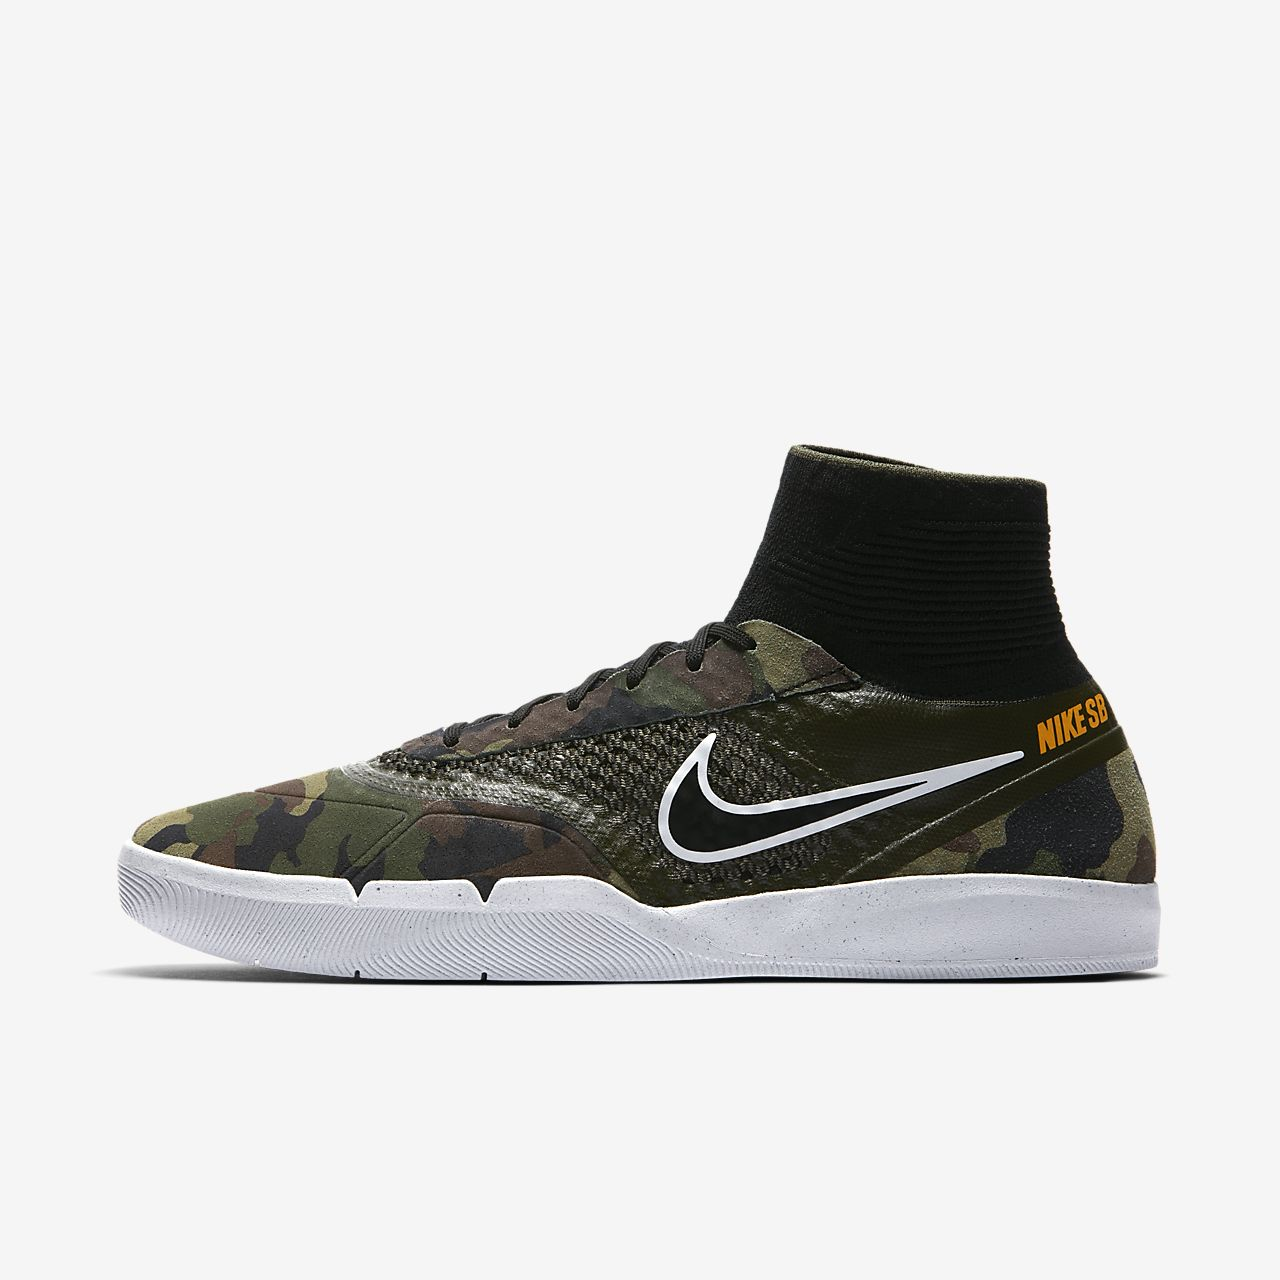 Nike Skateboarding Shoes Online